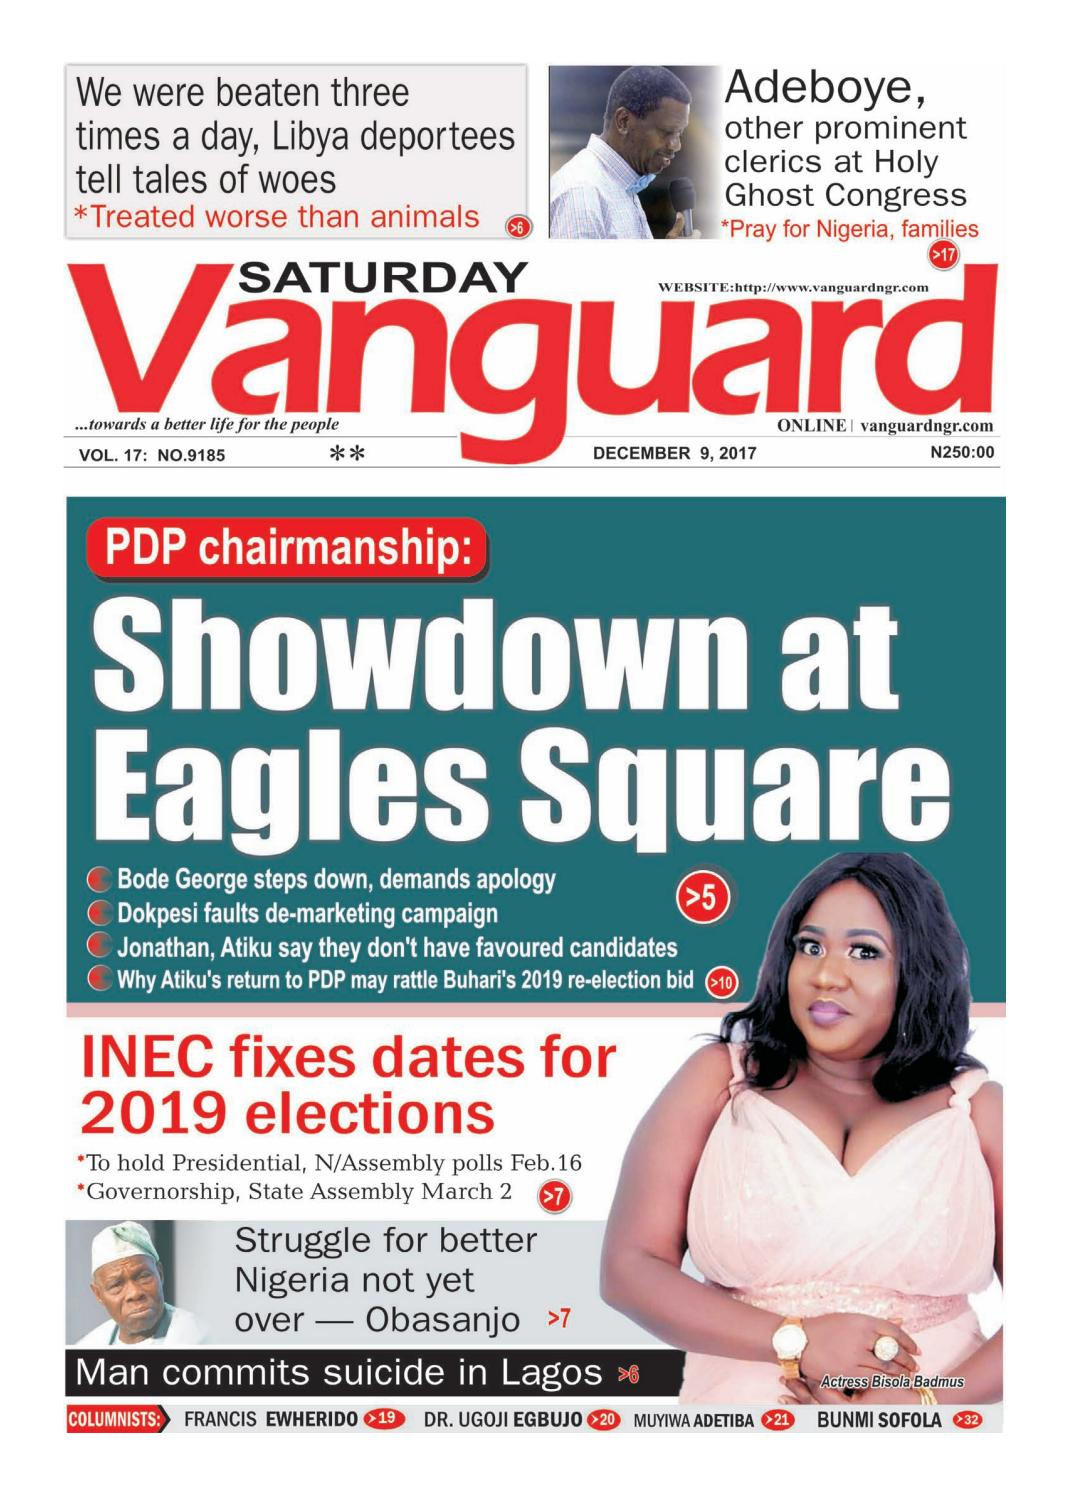 09122017 - PDP chairmanship: Showdown at Eagles Square by